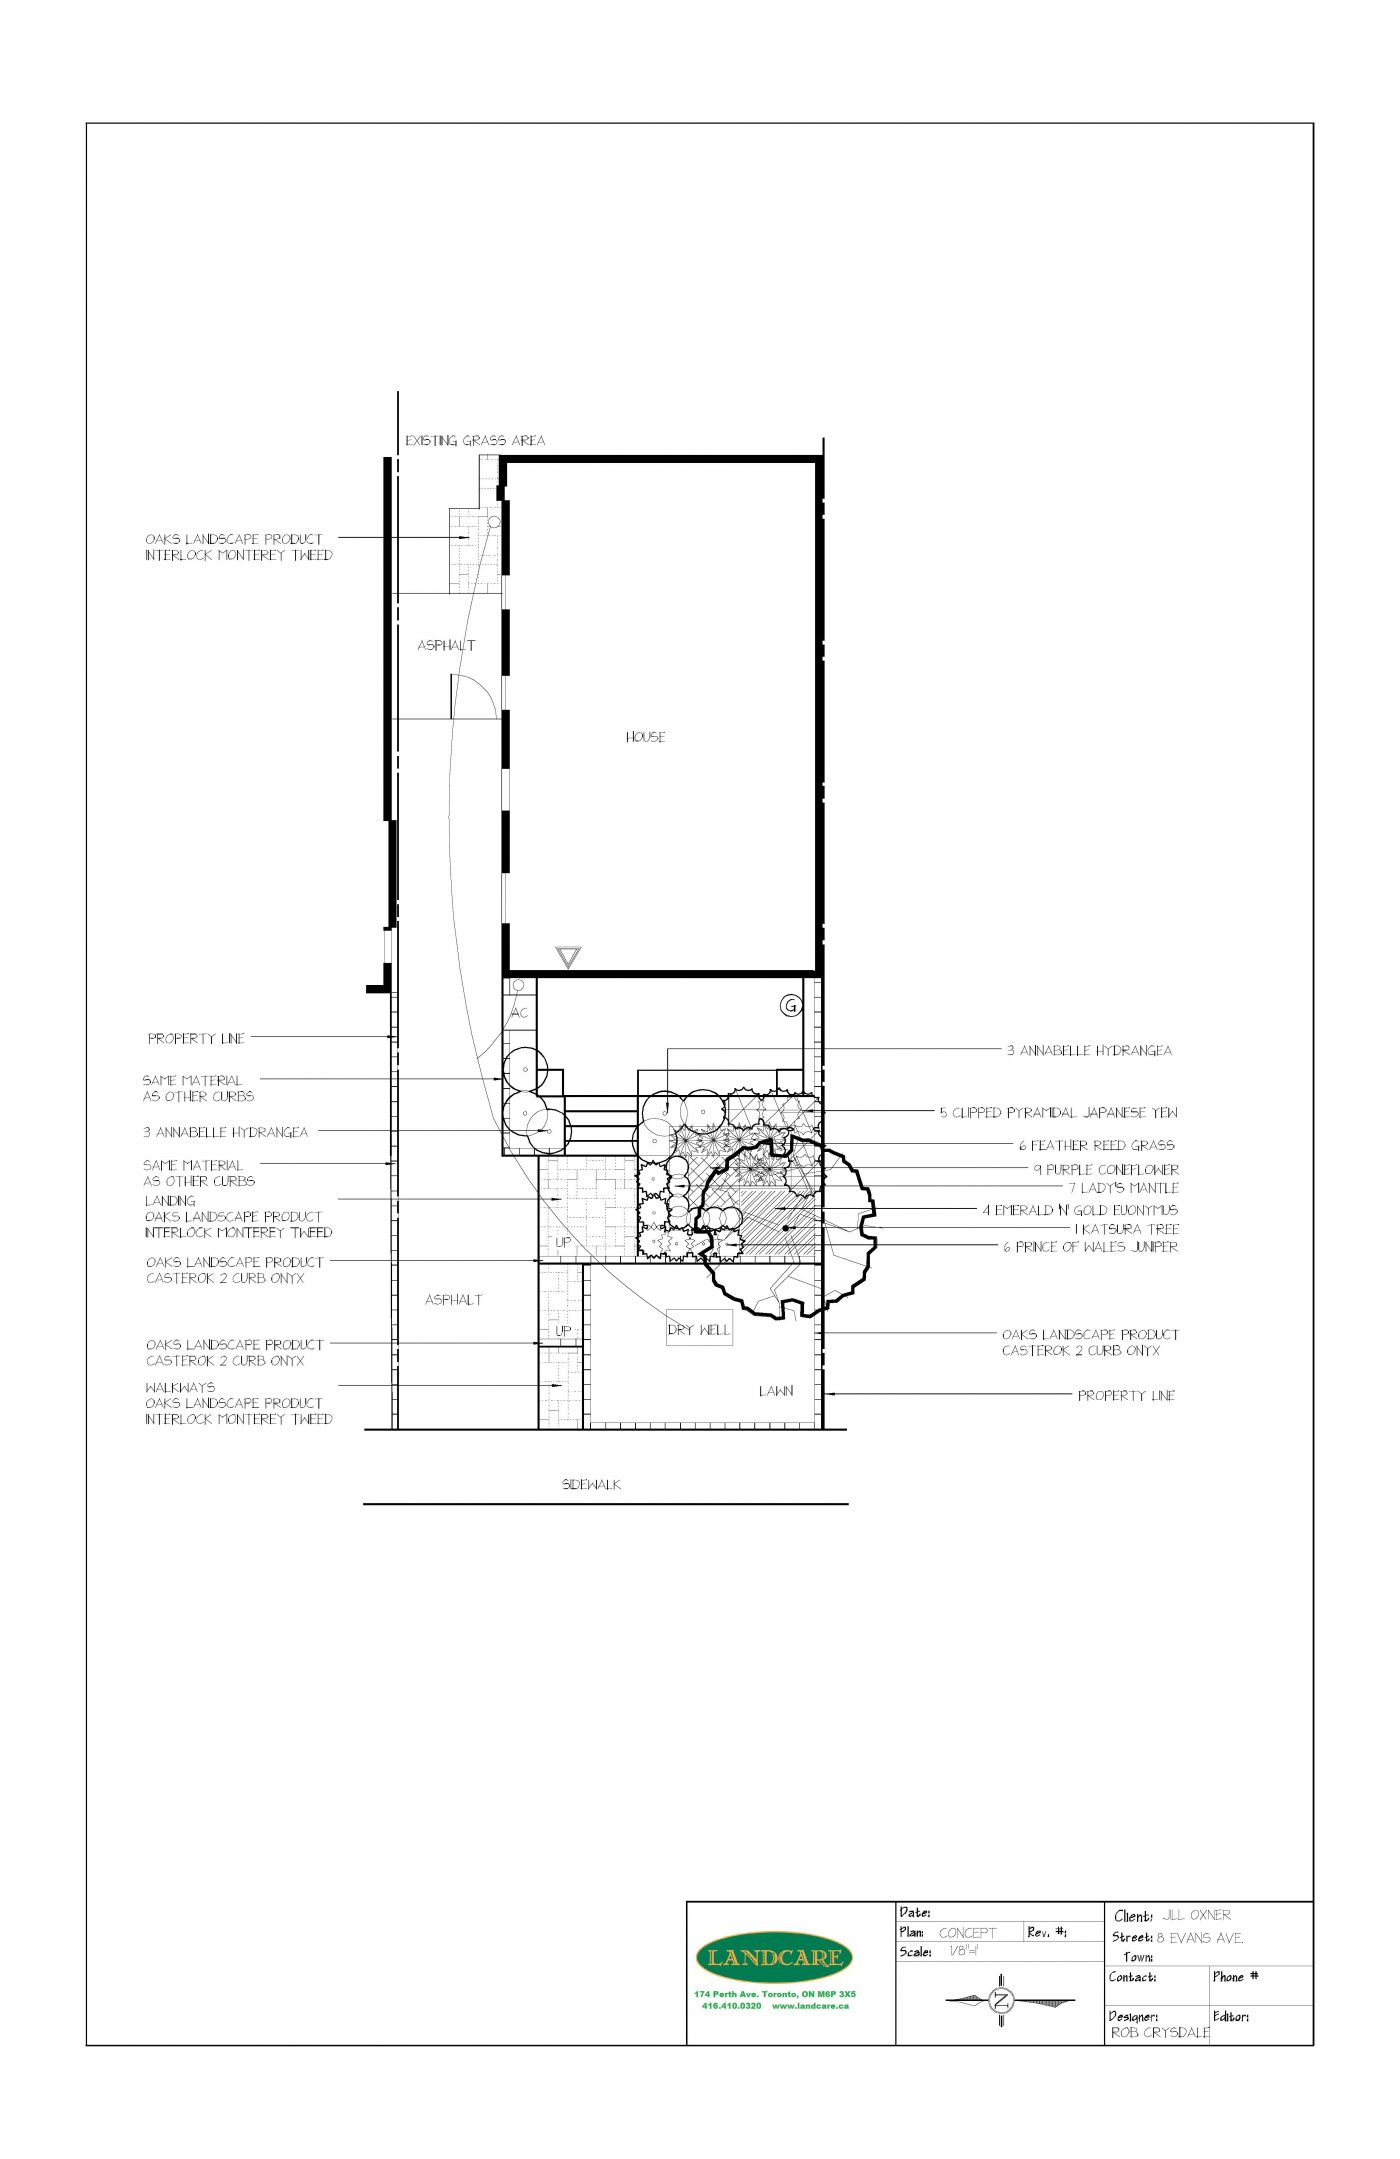 8 EVANS AVE. - OXNER JILL - FRONT YARD CONCEPT PLAN - 16-08-12 RS